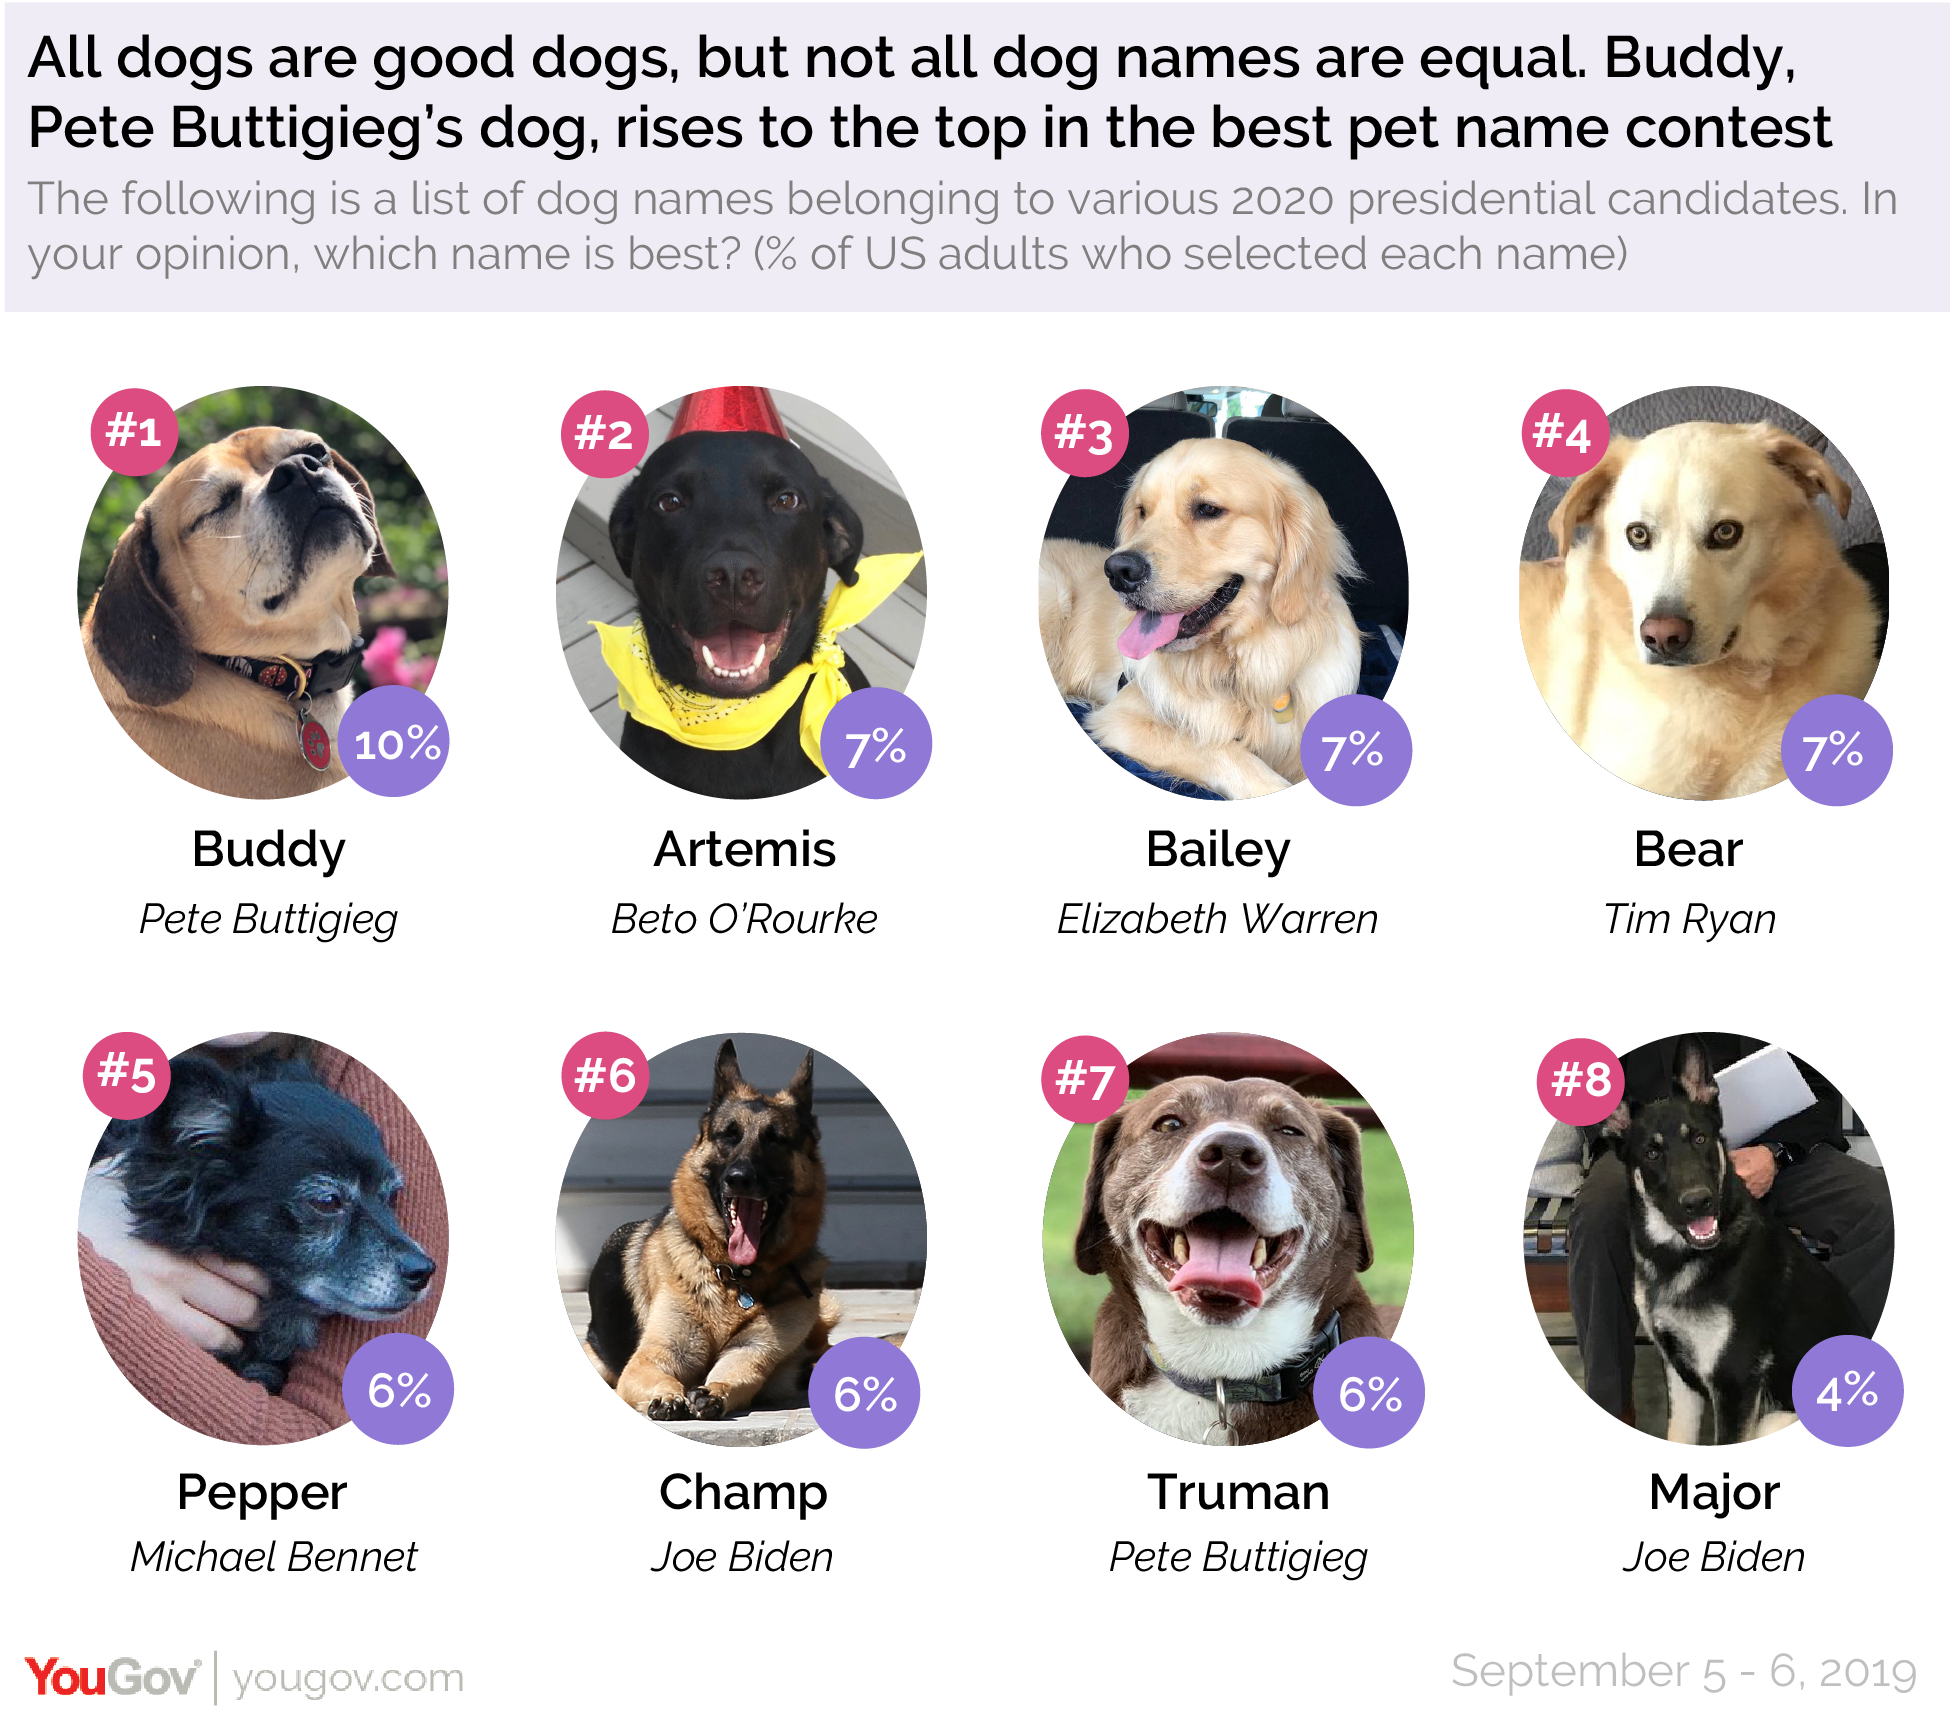 Pete Buttigieg's dog, Buddy, rises to the top of YouGov's best pet name contest